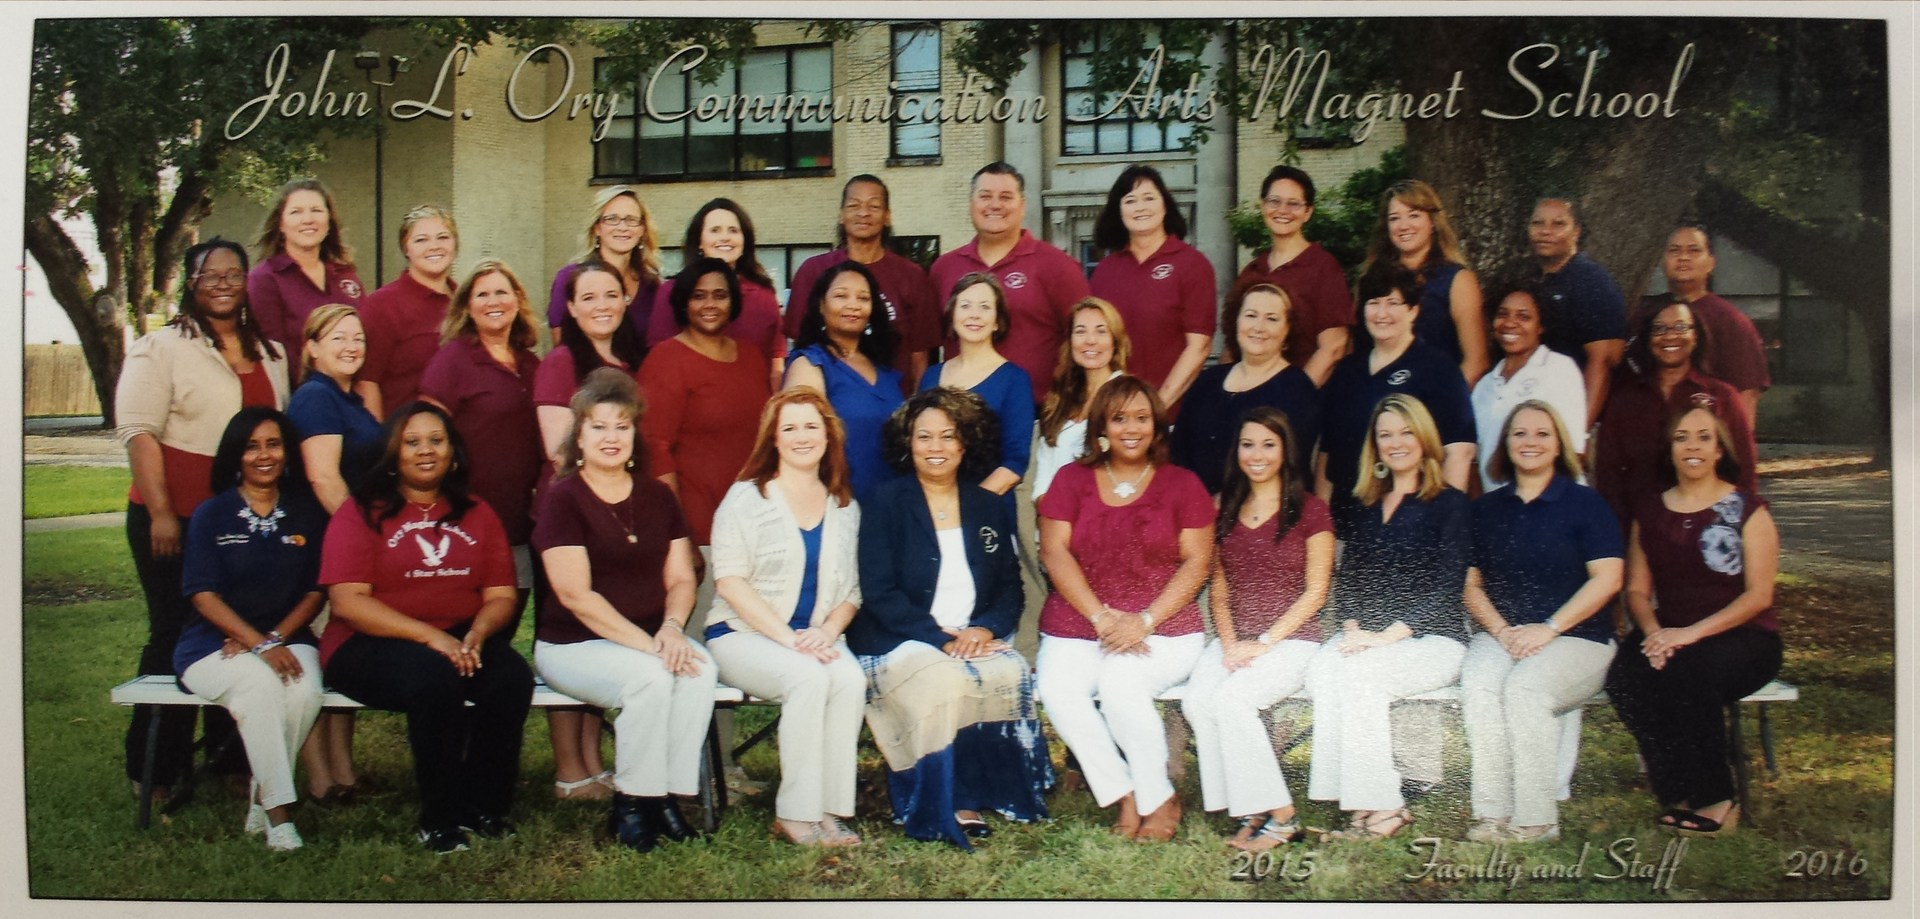 JLO Faculty & Staff